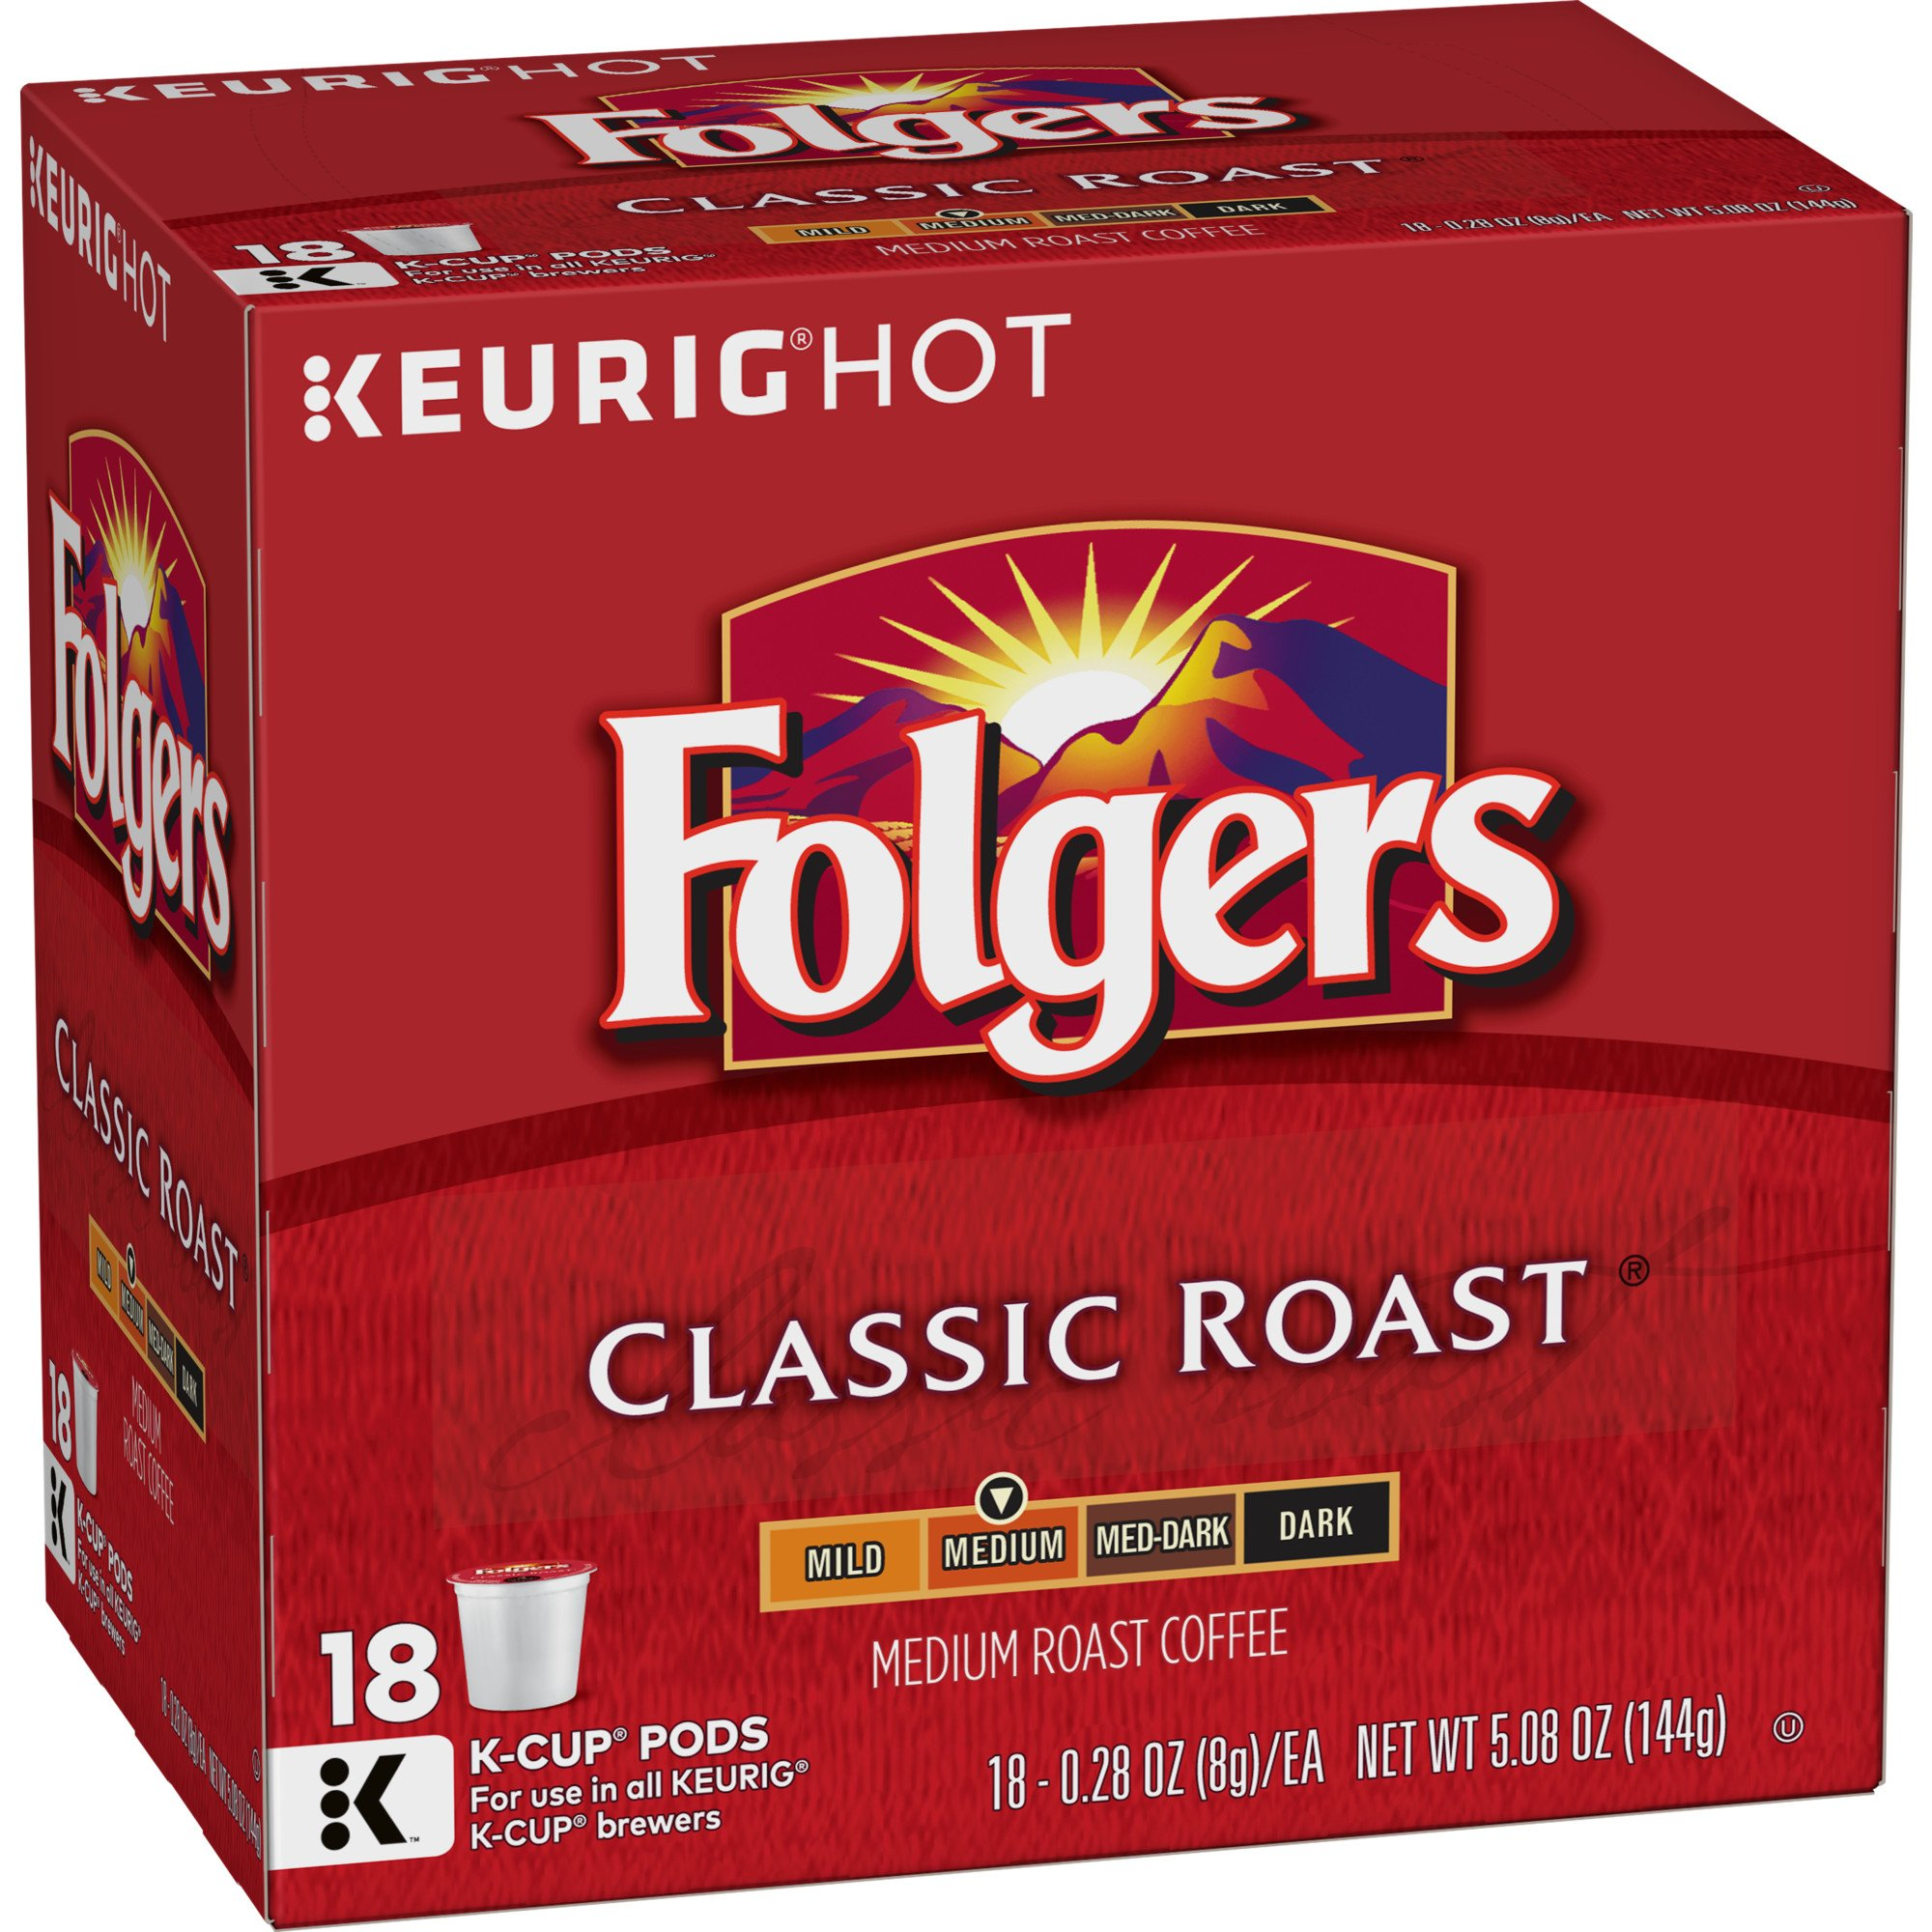 Folgers Classic Roast, Medium Roast Coffee, K-Cup Pods for Keurig K-Cup Brewers, 18-Count (Pack of 4) by FOLGERS K CUPS